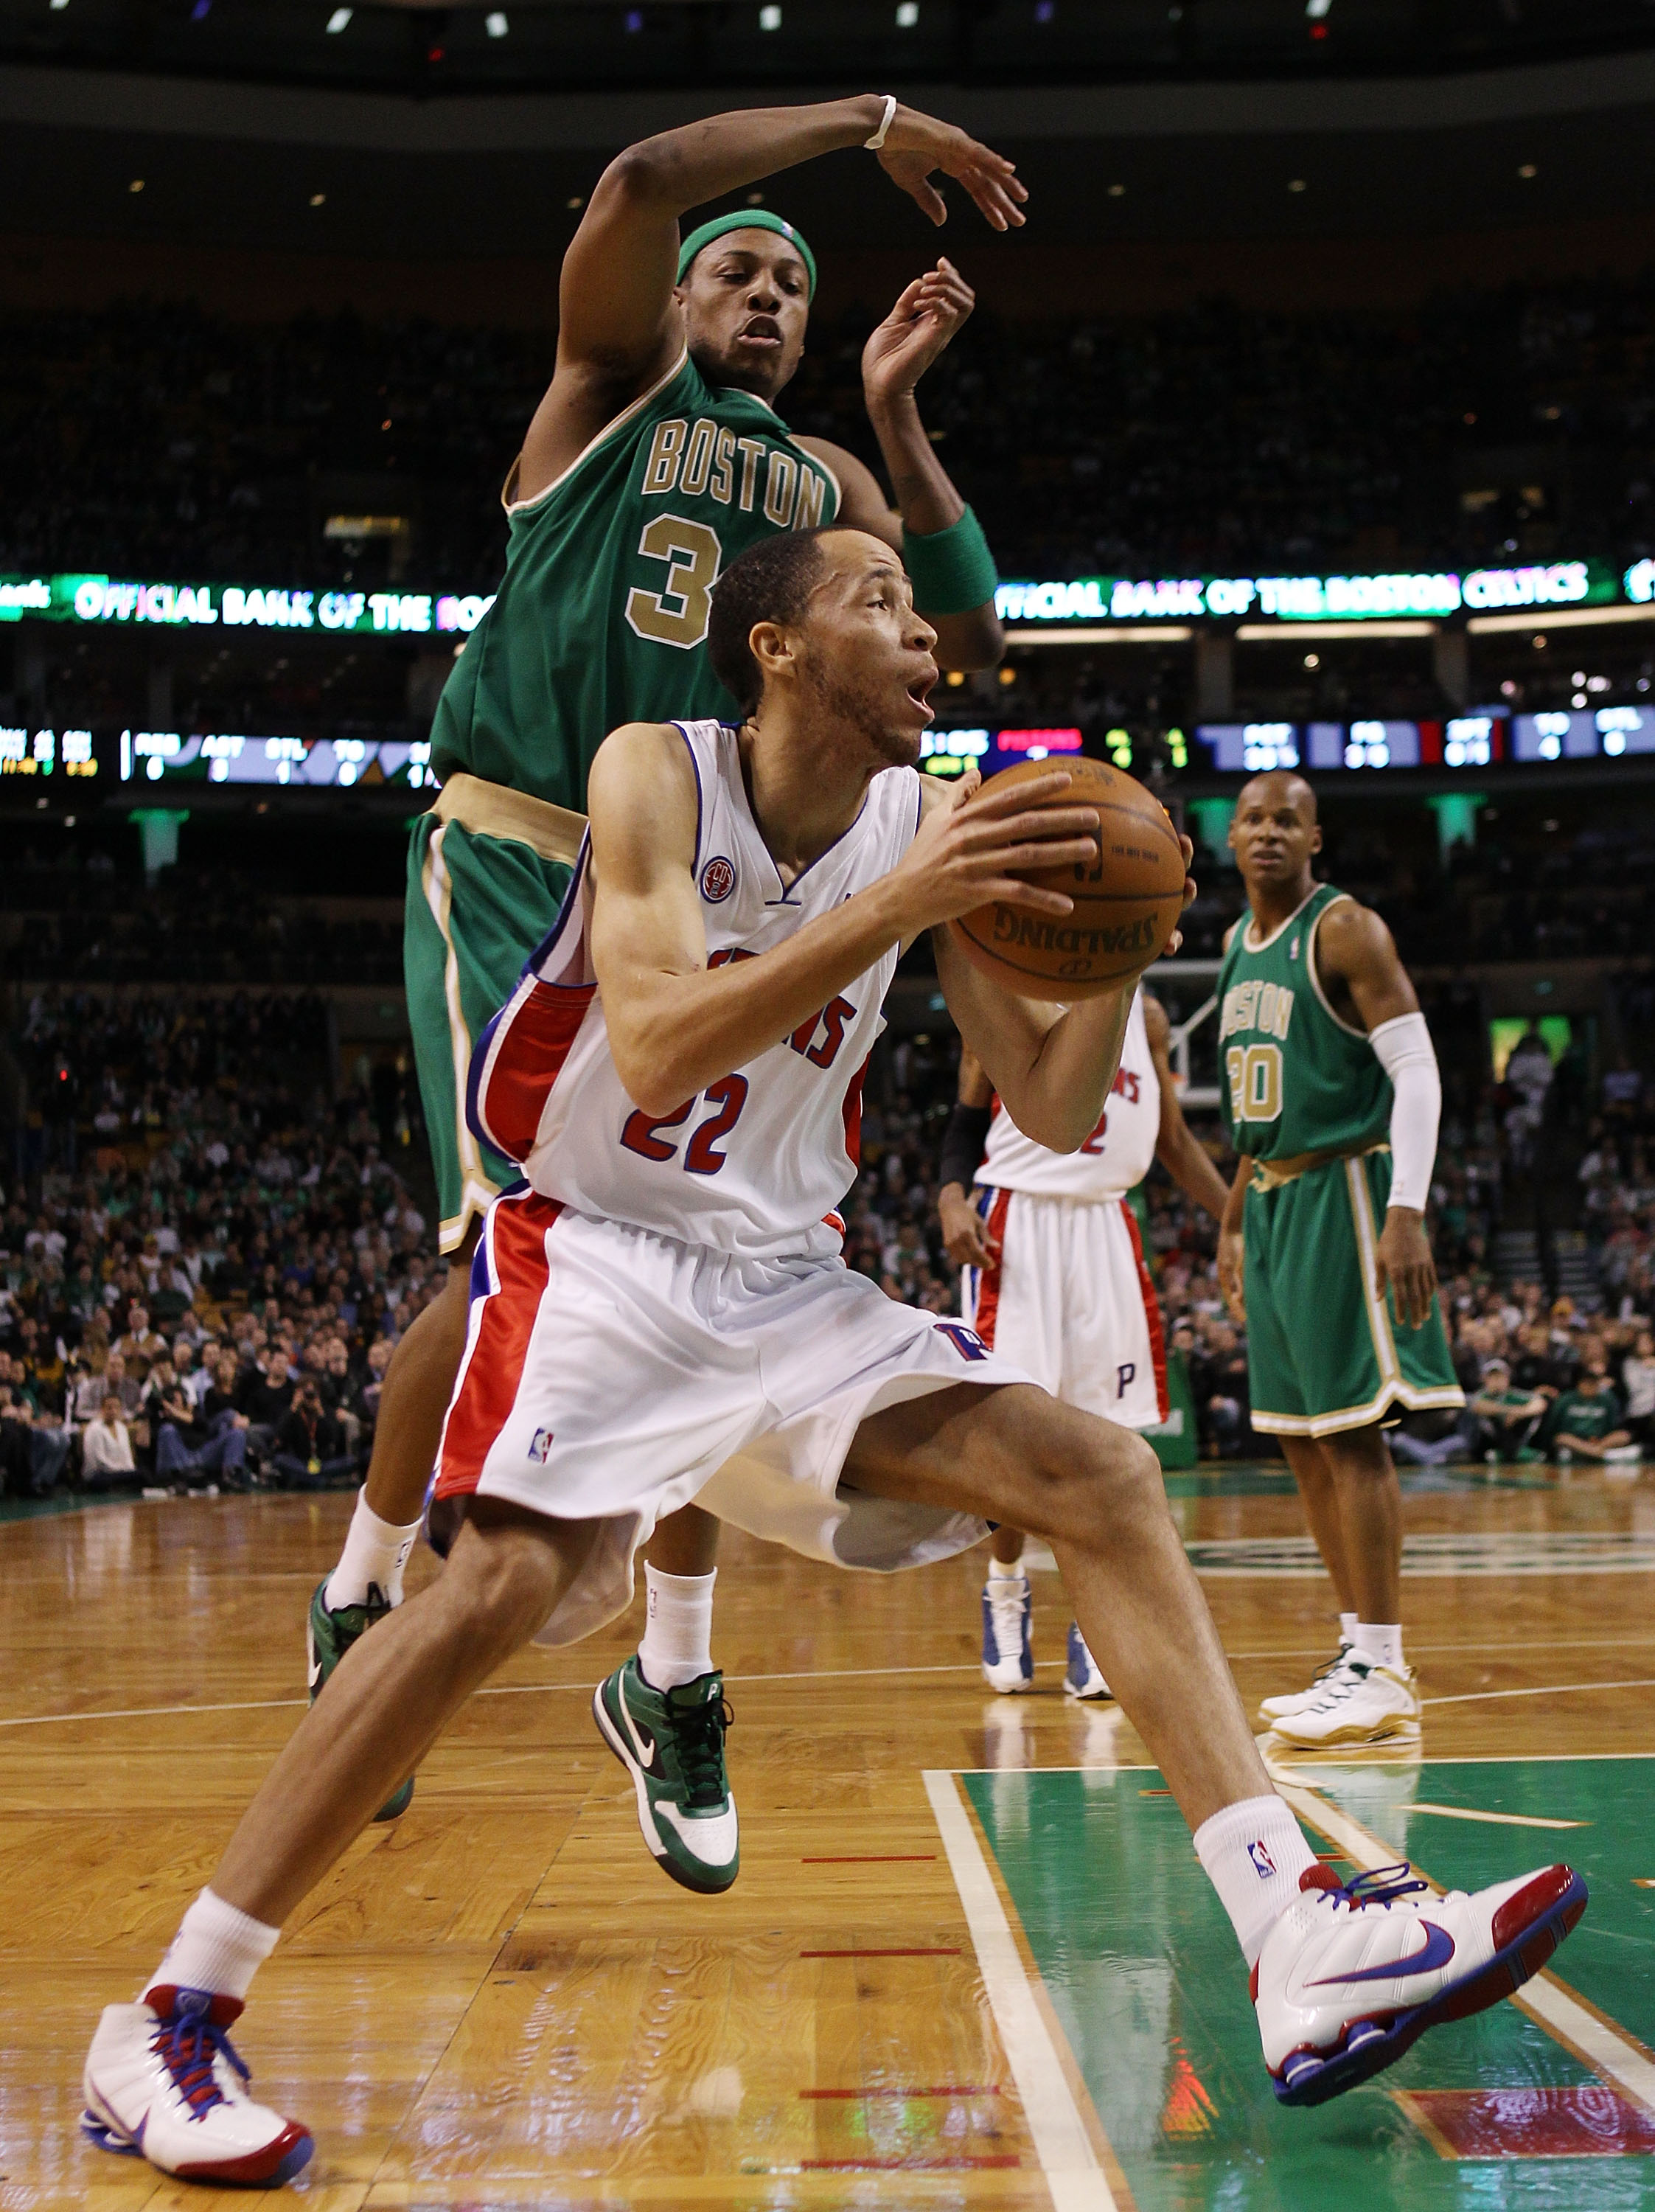 BOSTON - MARCH 15:  Tayshaun Prince #22 of the Detroit Pistons heads for the net as Paul Pierce #34 of the Boston Celtics defends on March 15, 2010 at the TD Garden in Boston, Massachusetts.  NOTE TO USER: User expressly acknowledges and agrees that, by d